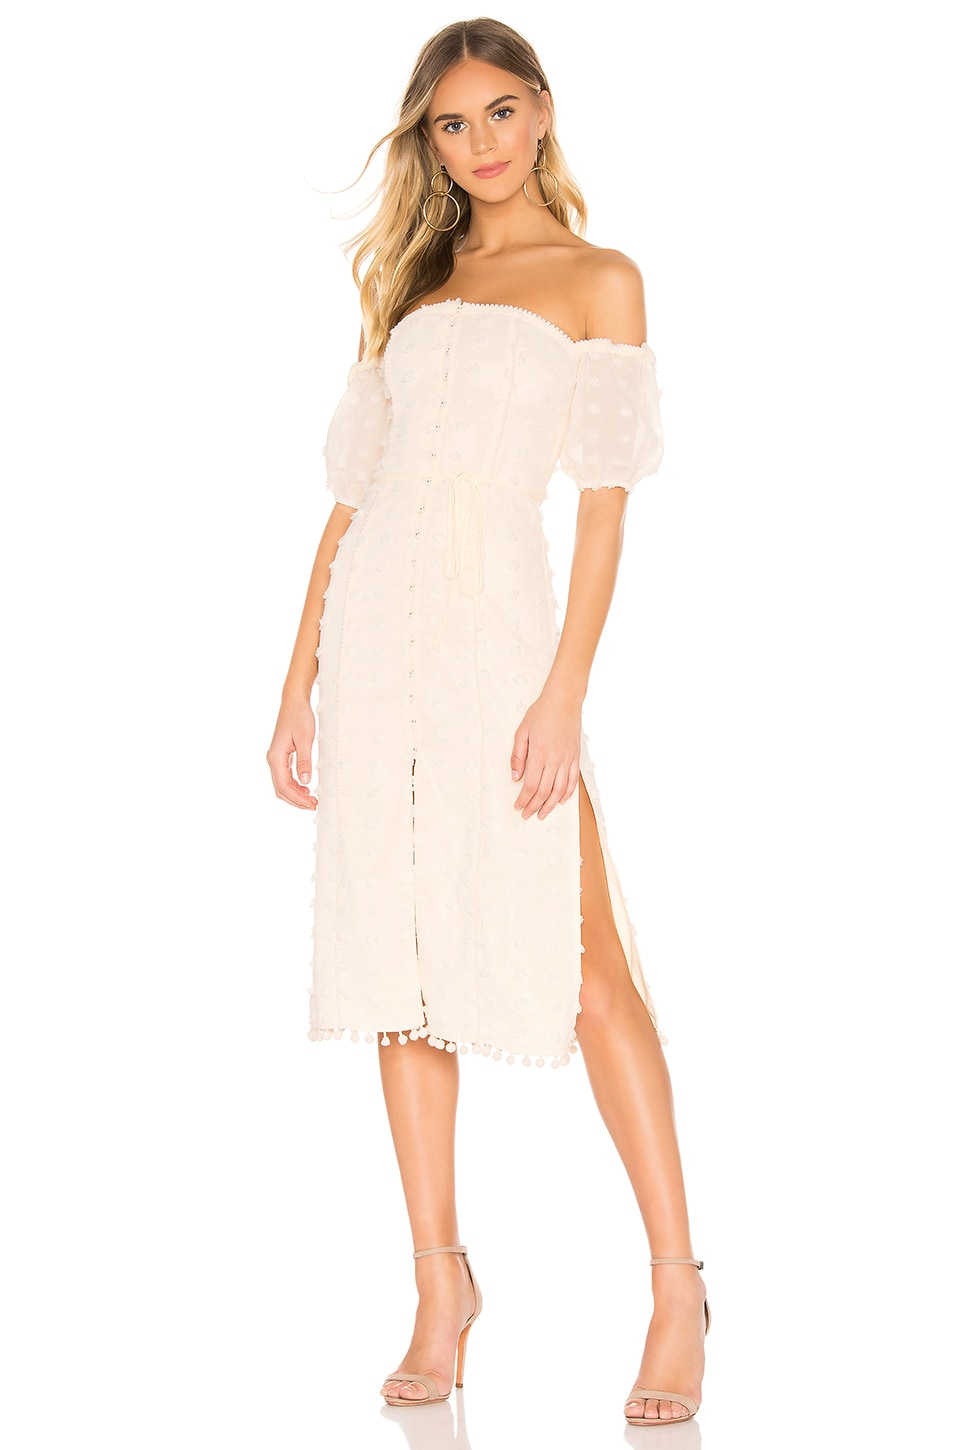 Tularosa Lori Dress in Ivory